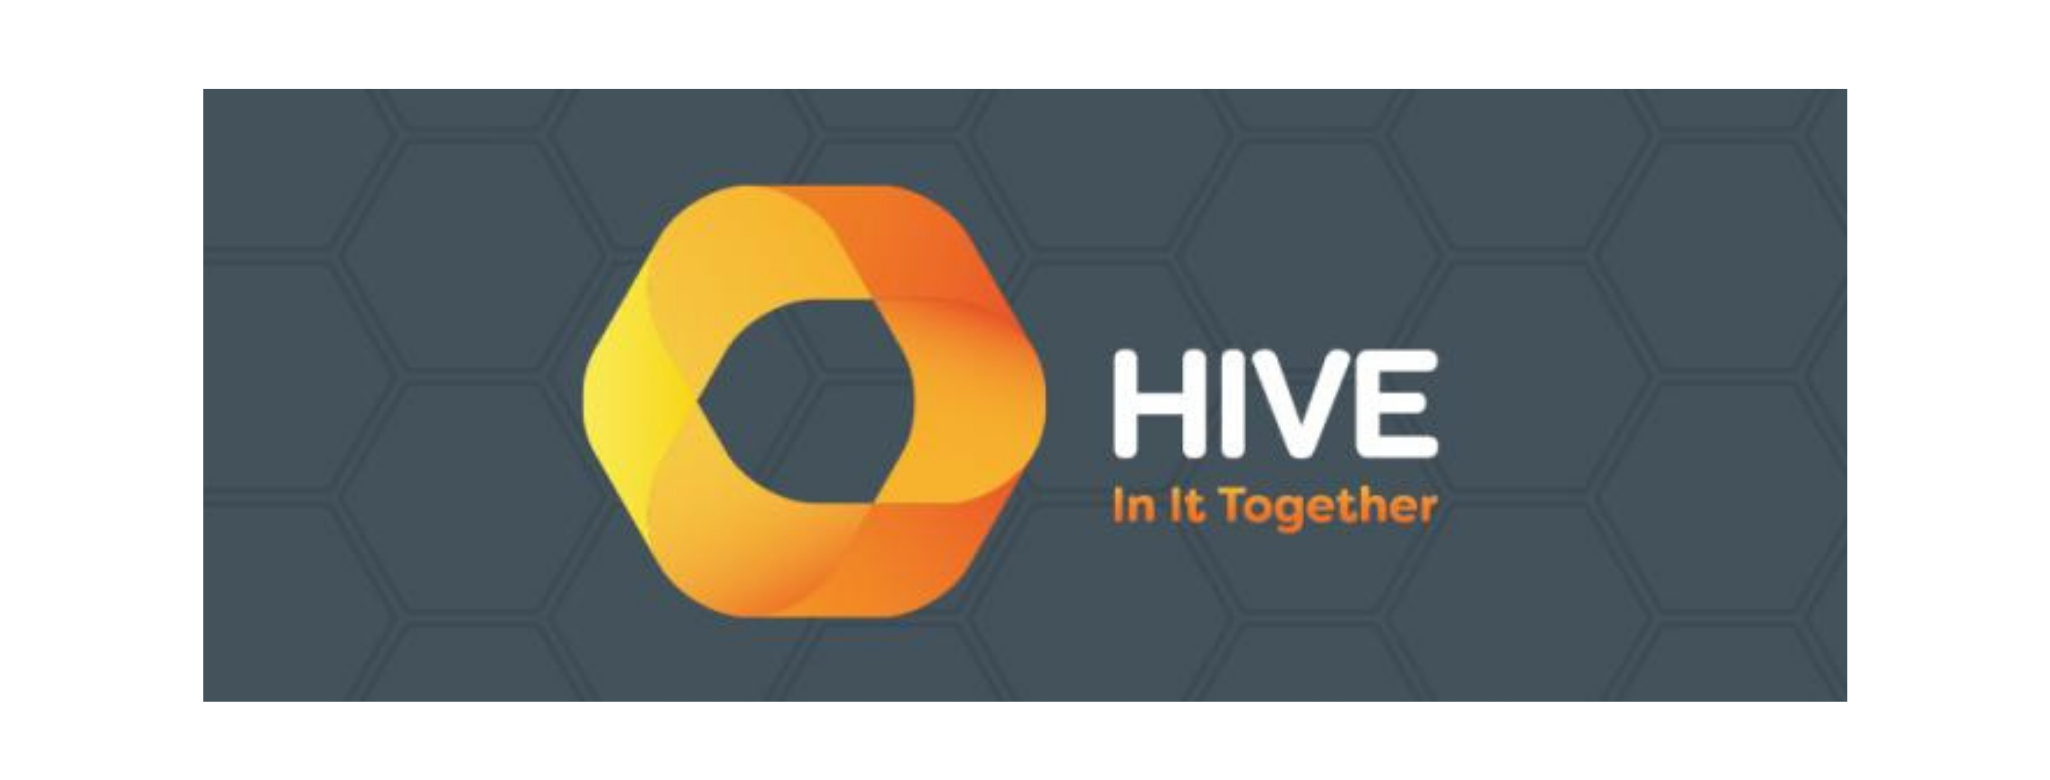 HIVE IN IT TOGETHER